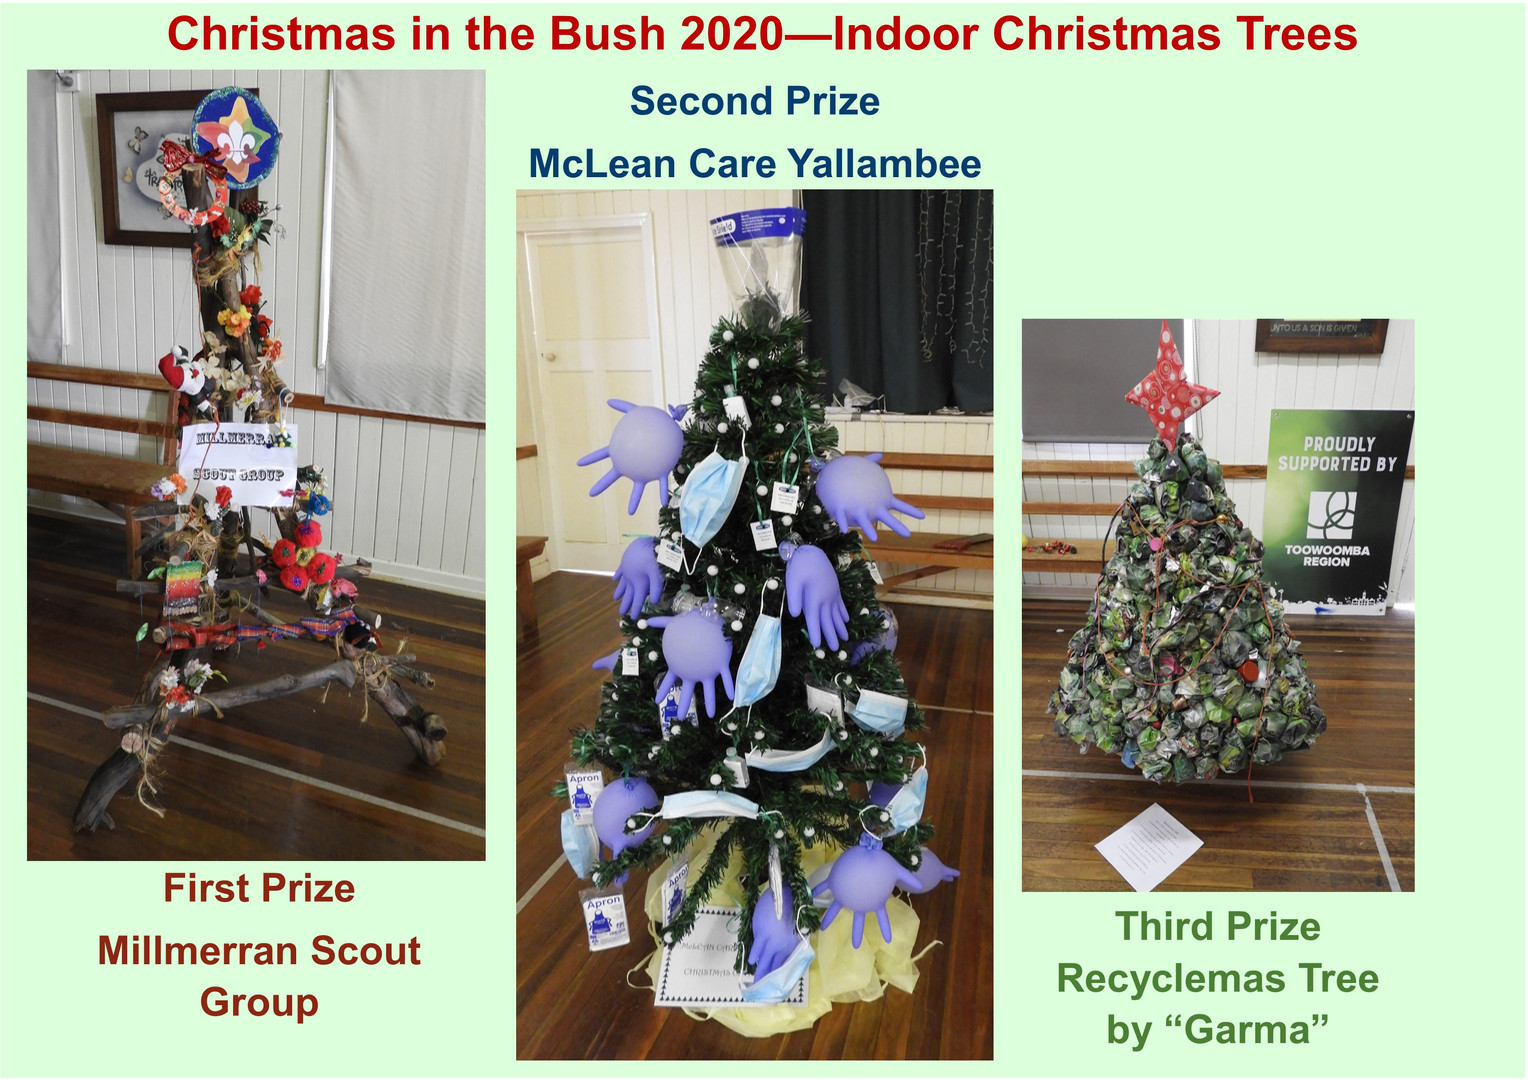 Inddor Christmas Trees 1-3 prizes.jpg